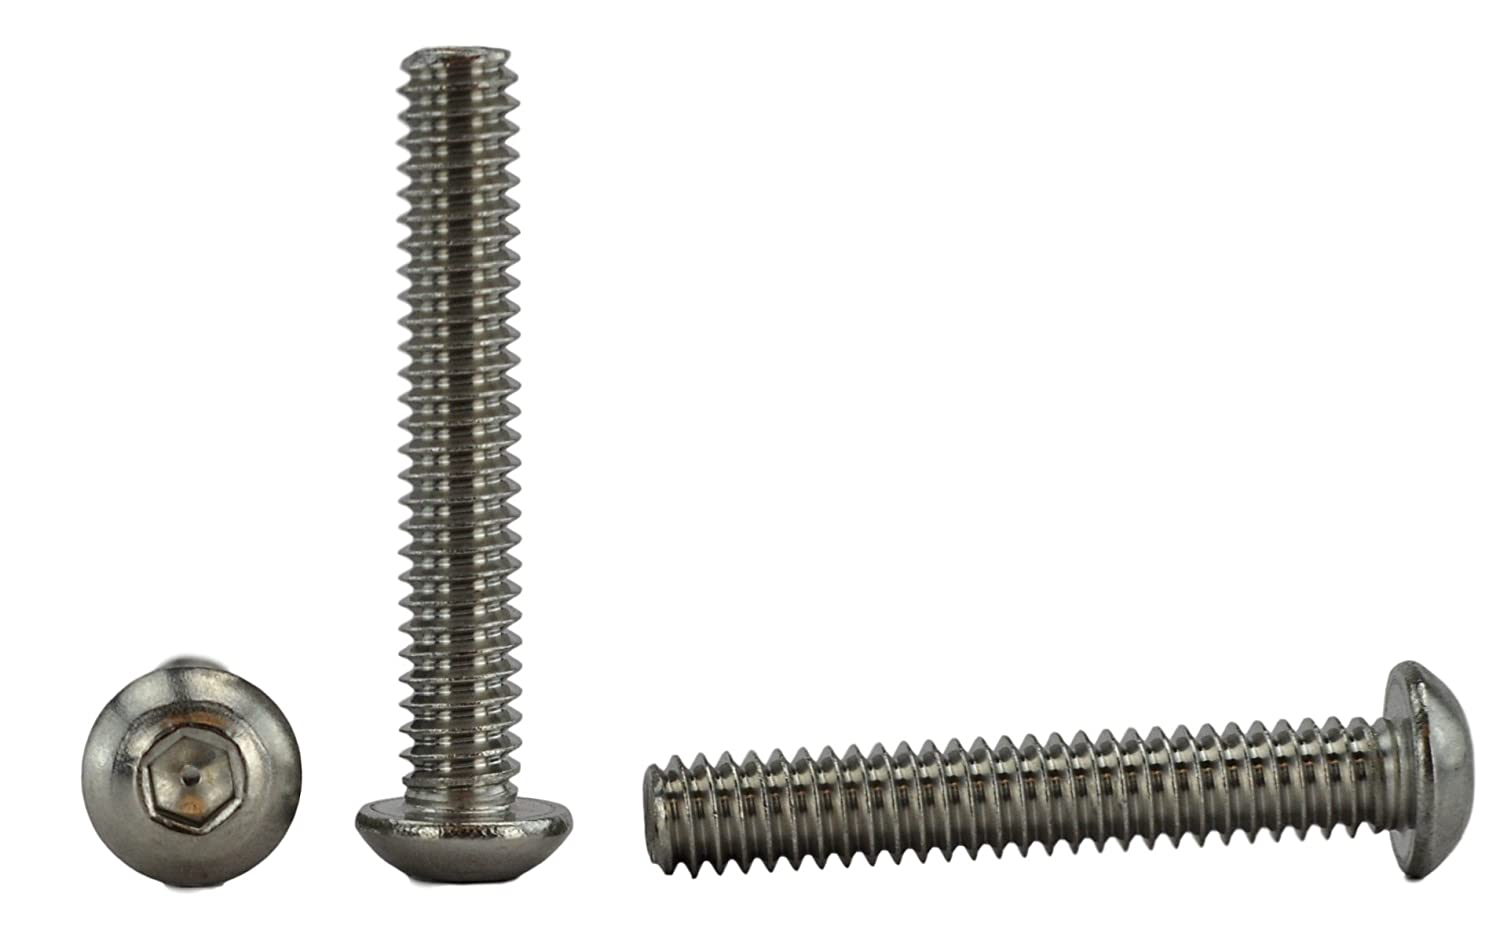 Stainless Steel 18-8 1//2 to 3 Available Socket Button Head Cap Screws Full Thread Hex Drive Coarse Thread 1//4-20 x 2-1//2 Stainless 1//4-20 x 2-1//2